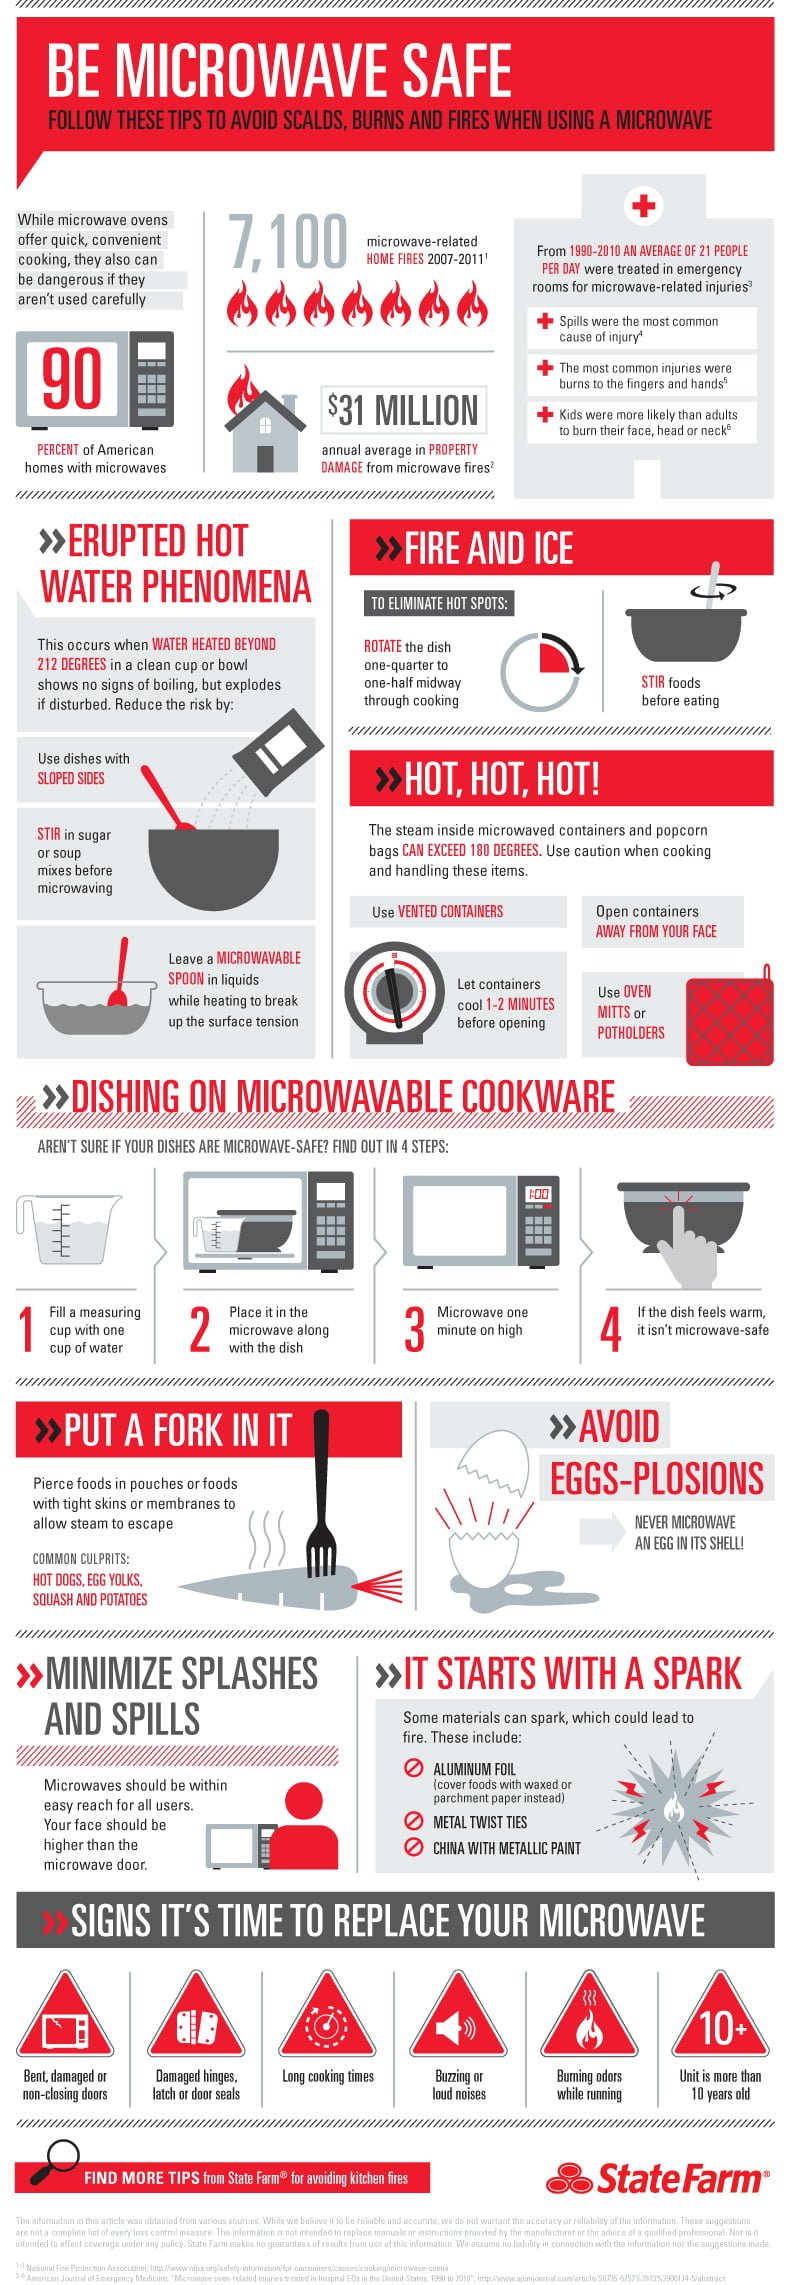 Microwave Safety Tips Infographic